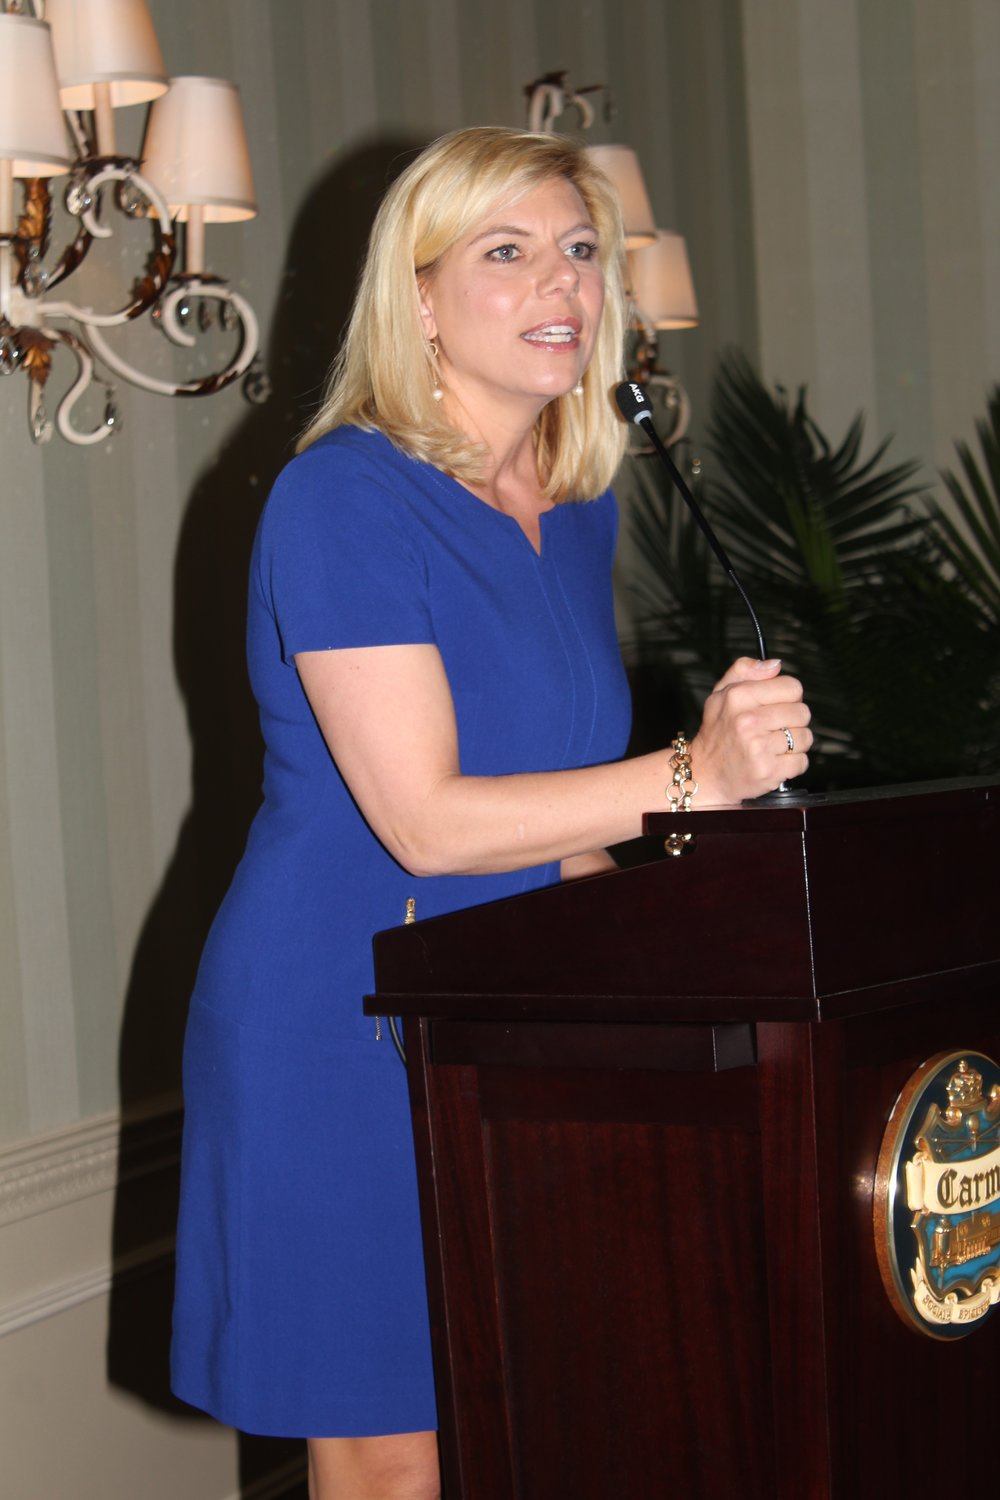 WBTV anchor Molly Grantham was emcee of the fashion show.